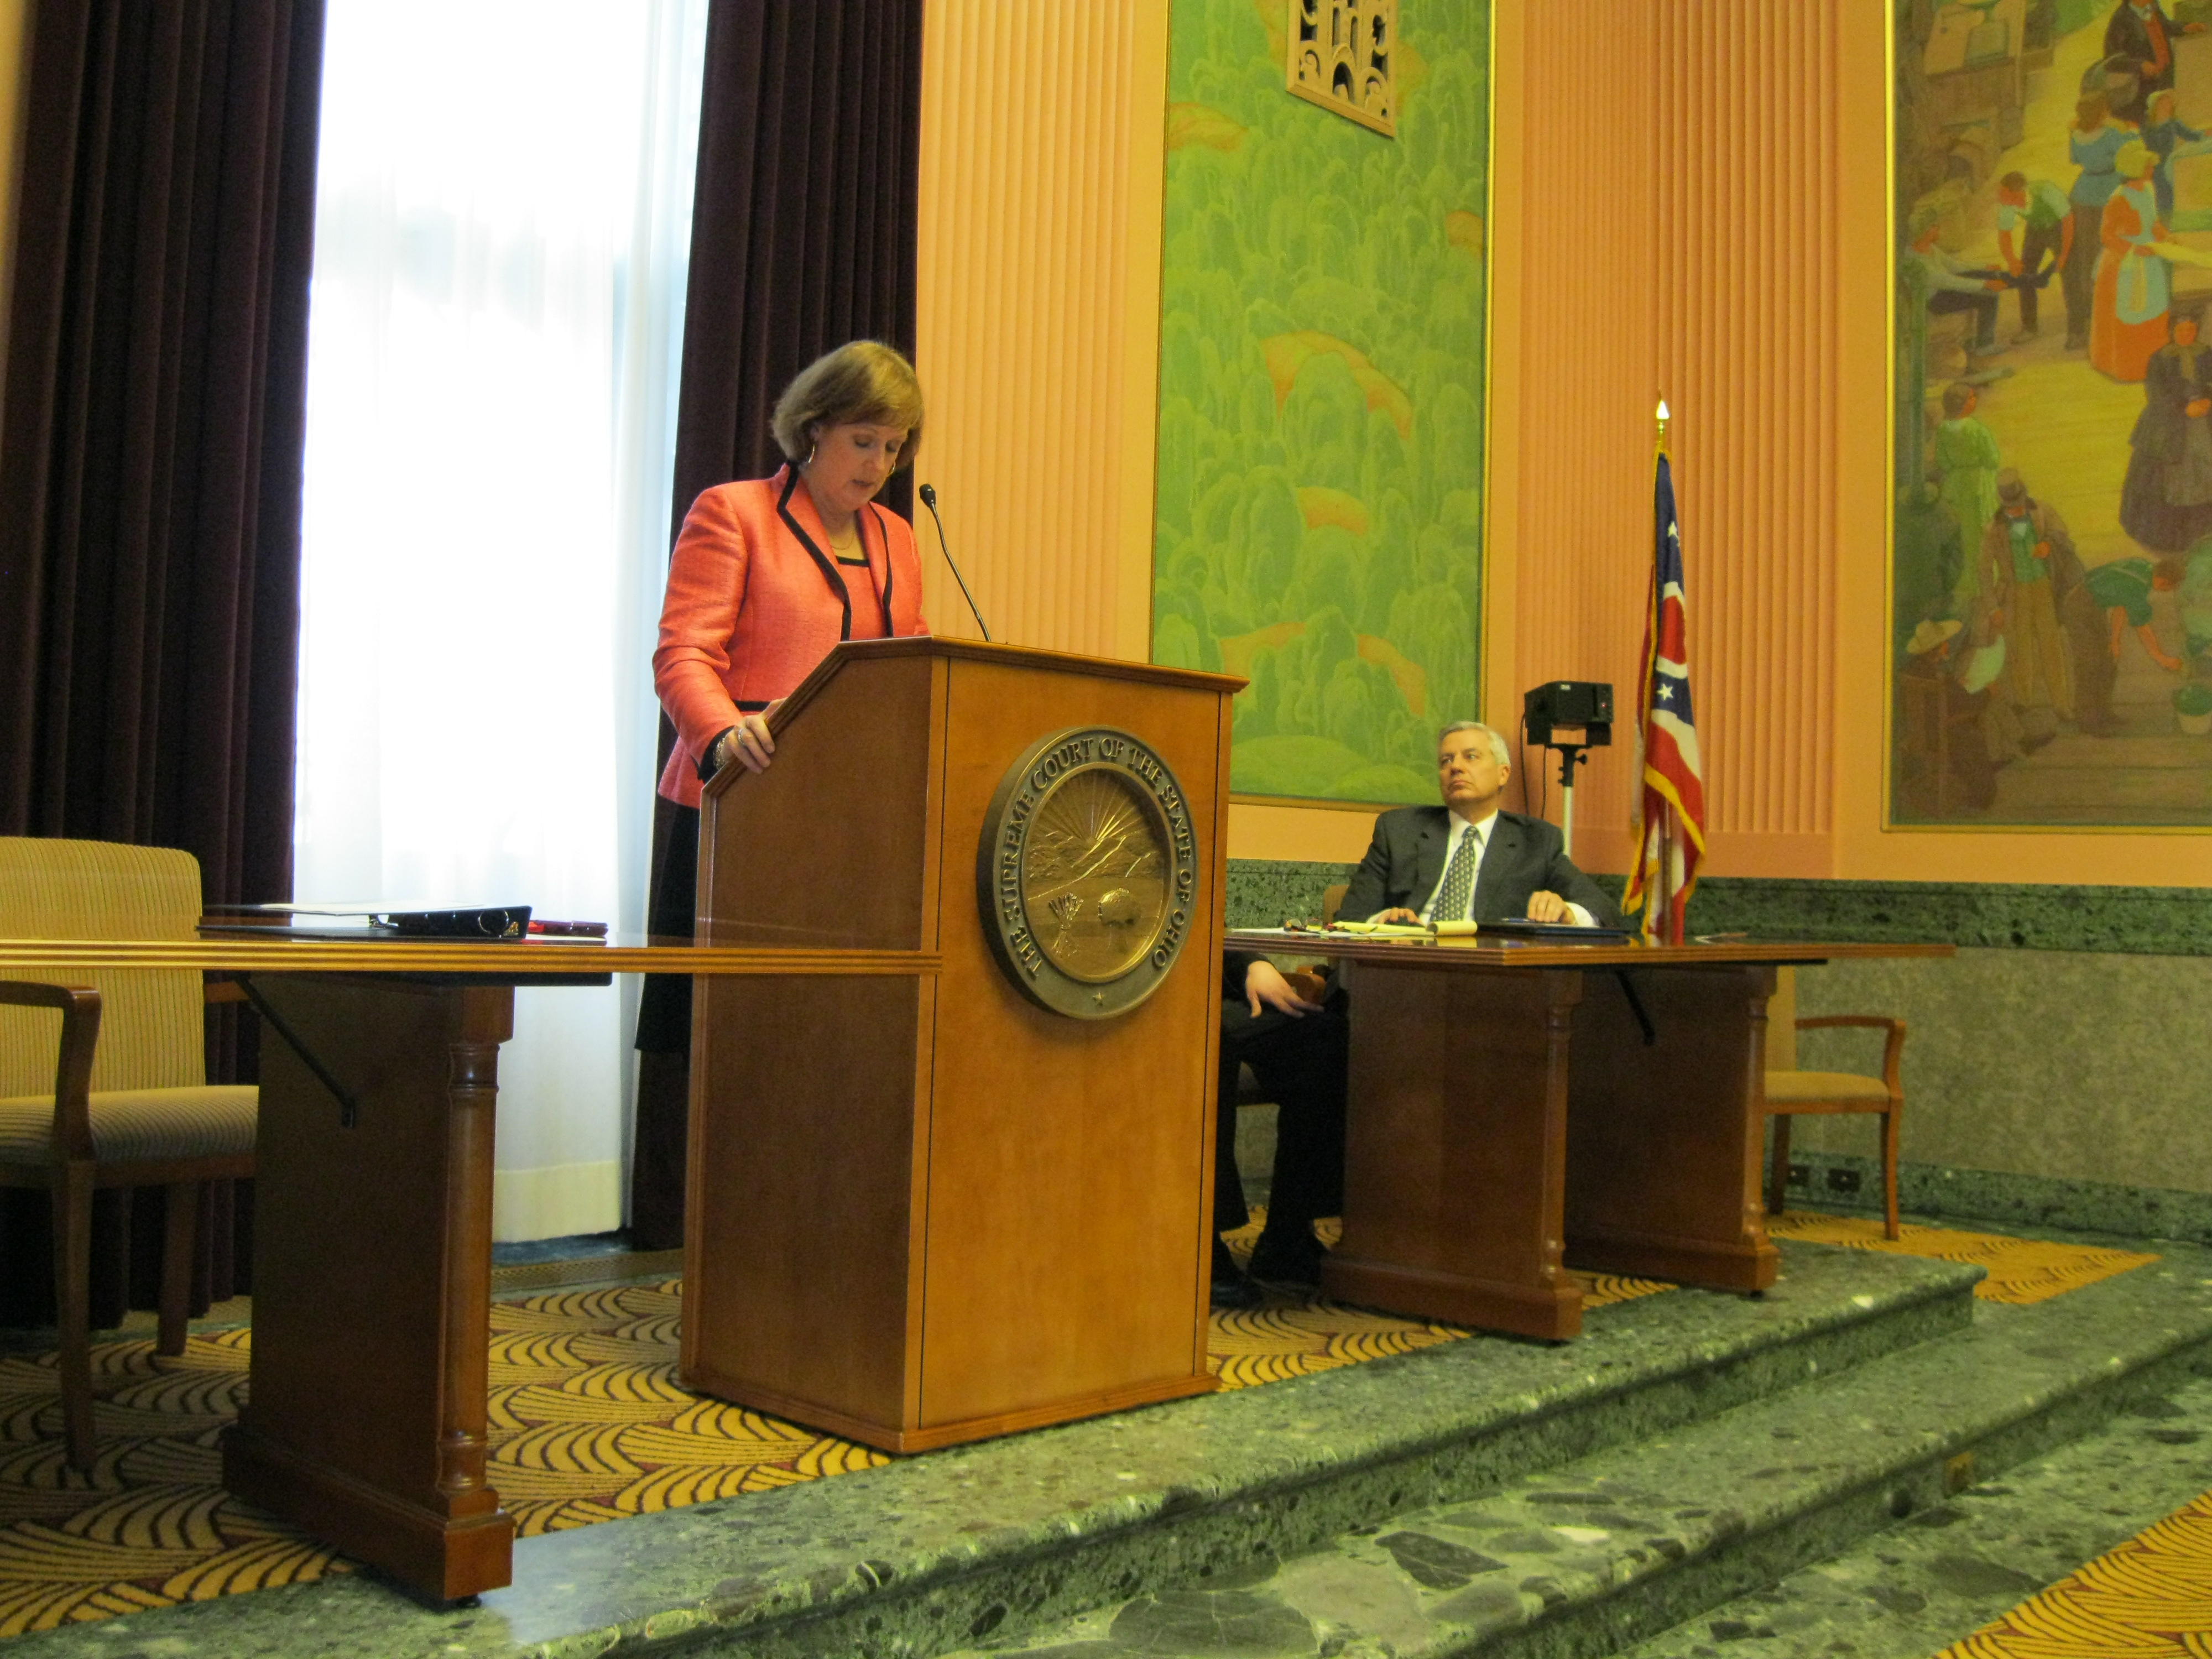 Chief Justice, Maureen O'Connor